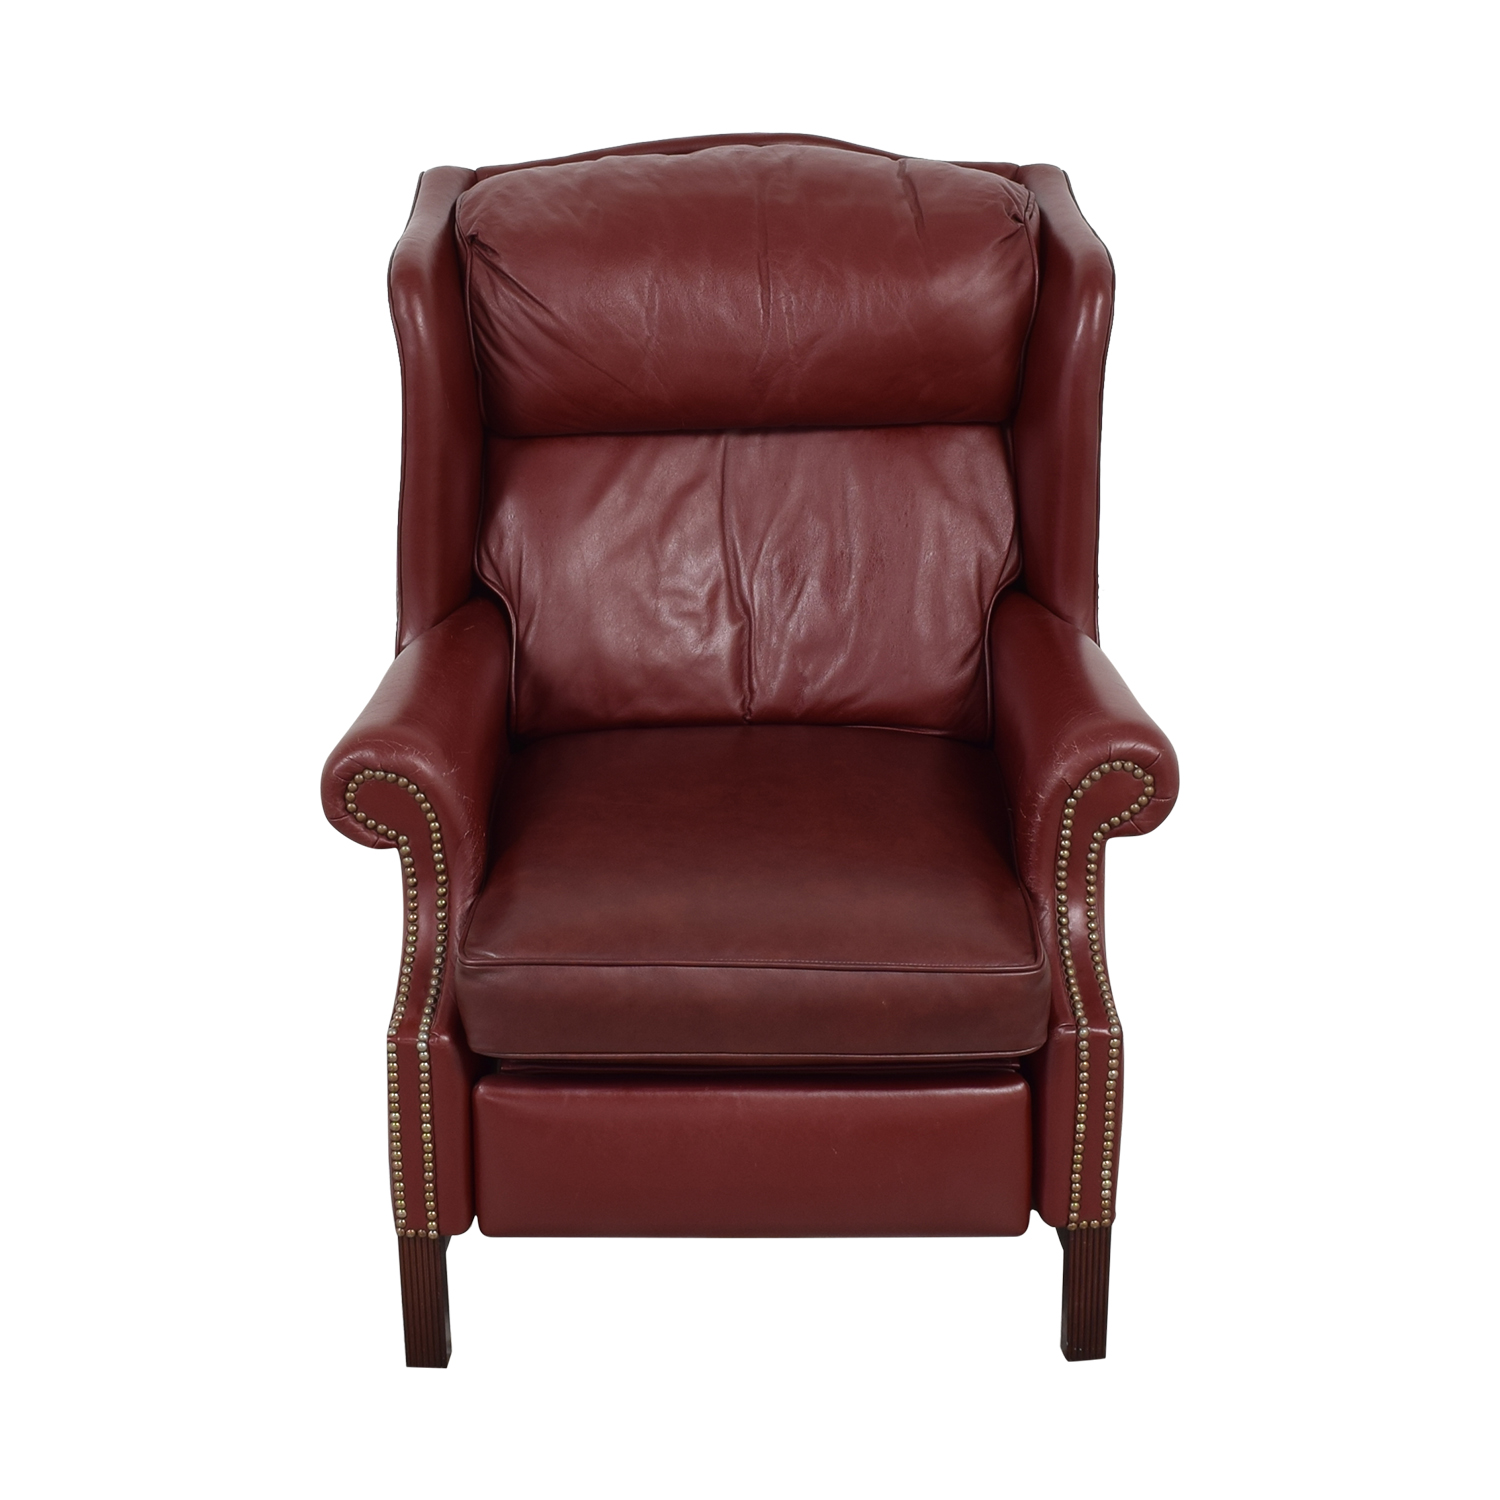 Classic Leather Classic Leather Recliner Chair ma